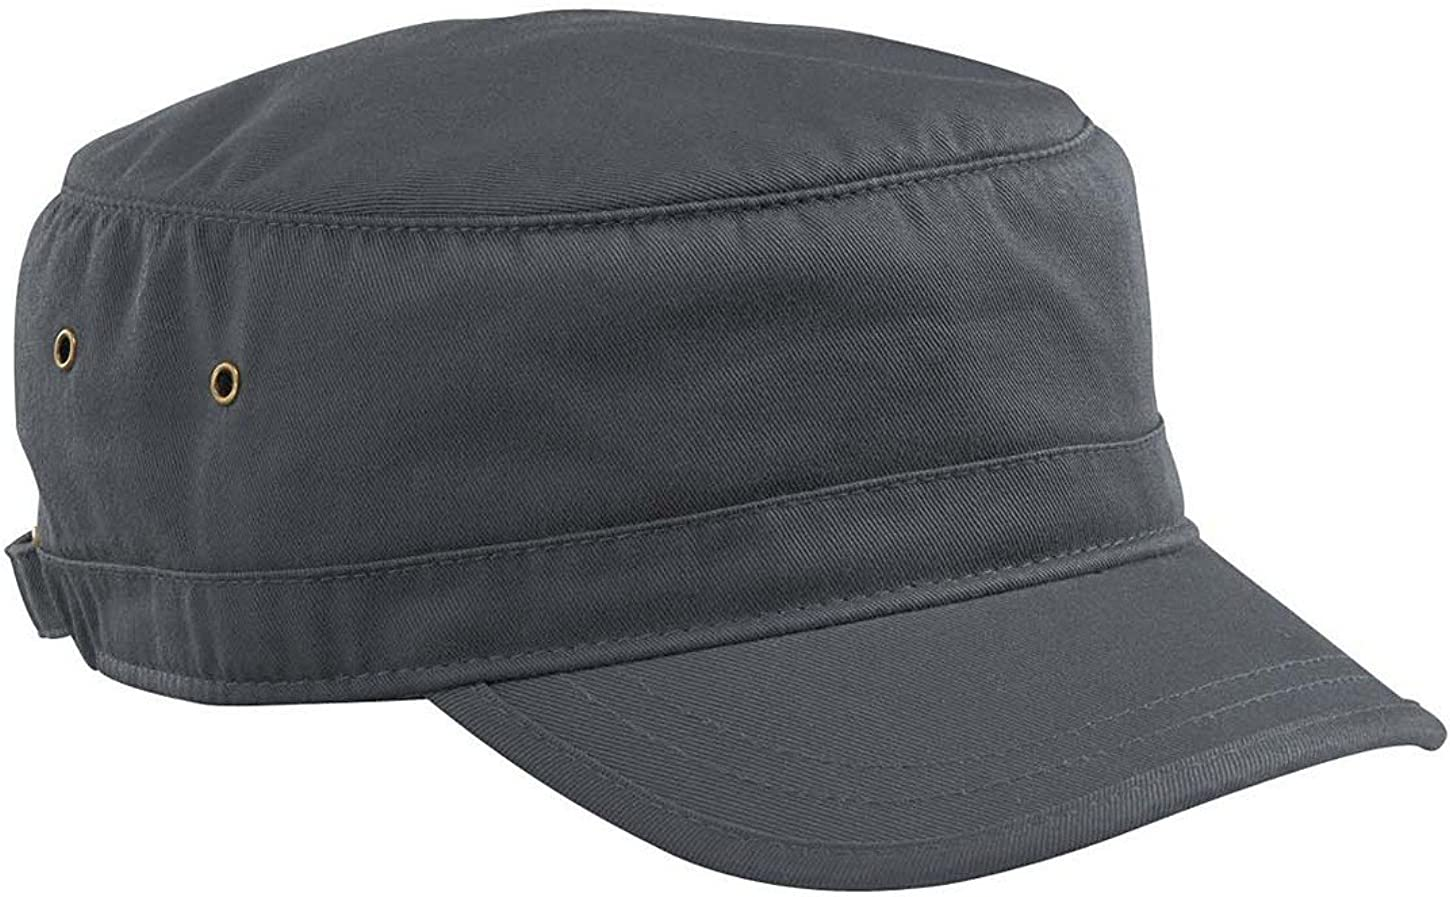 econscious 100% Organic Cotton Twill Adjustable Corps Hat